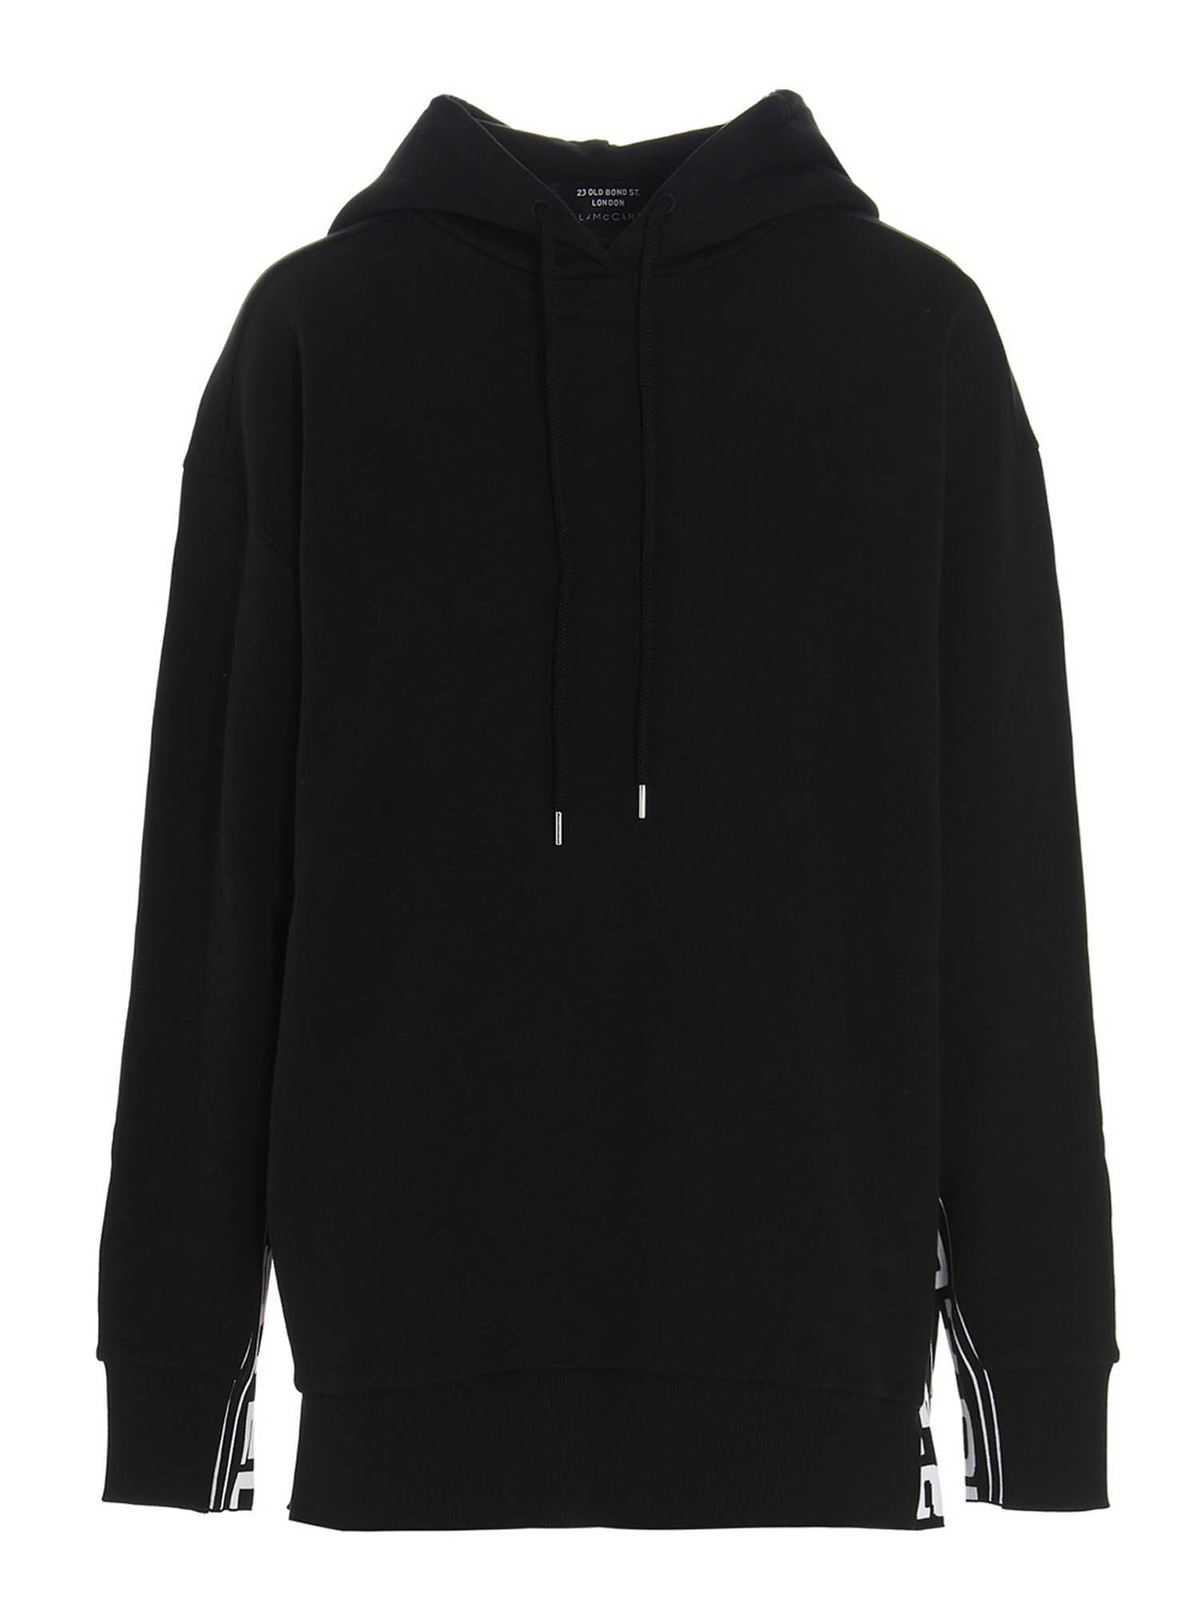 Stella Mccartney LOGO BAND HOODIE IN BLACK